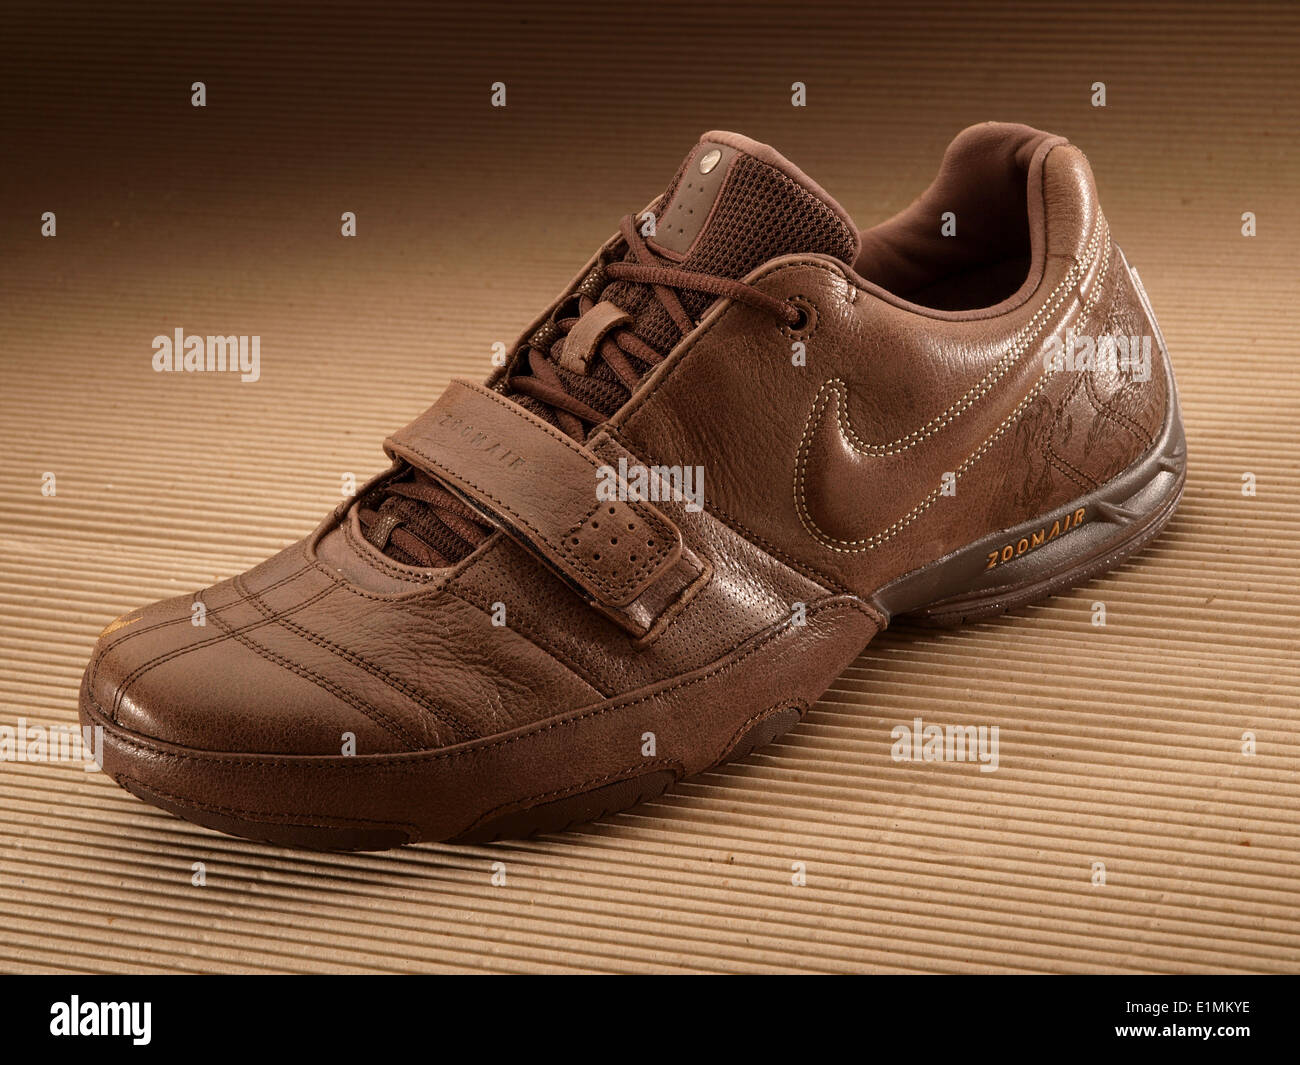 Nike ZoomAir brown sports shoe - Stock Image